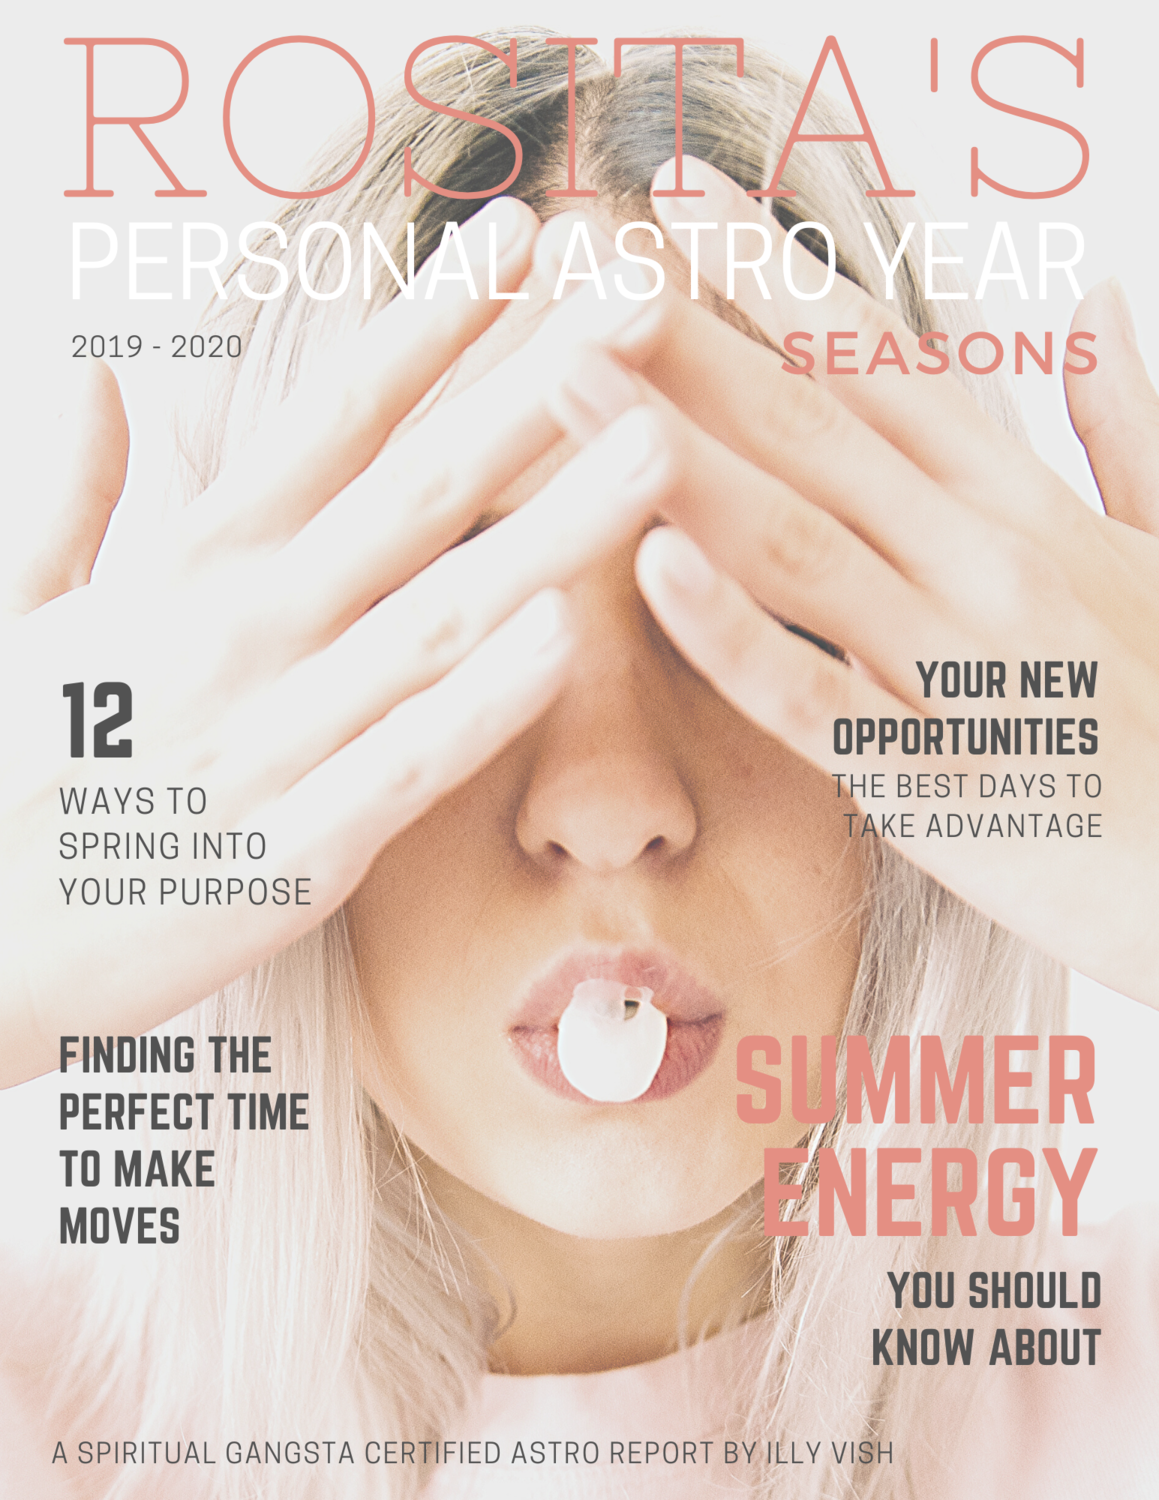 Personalized Astrological Year Seasons Report Magazine Style PDF Book